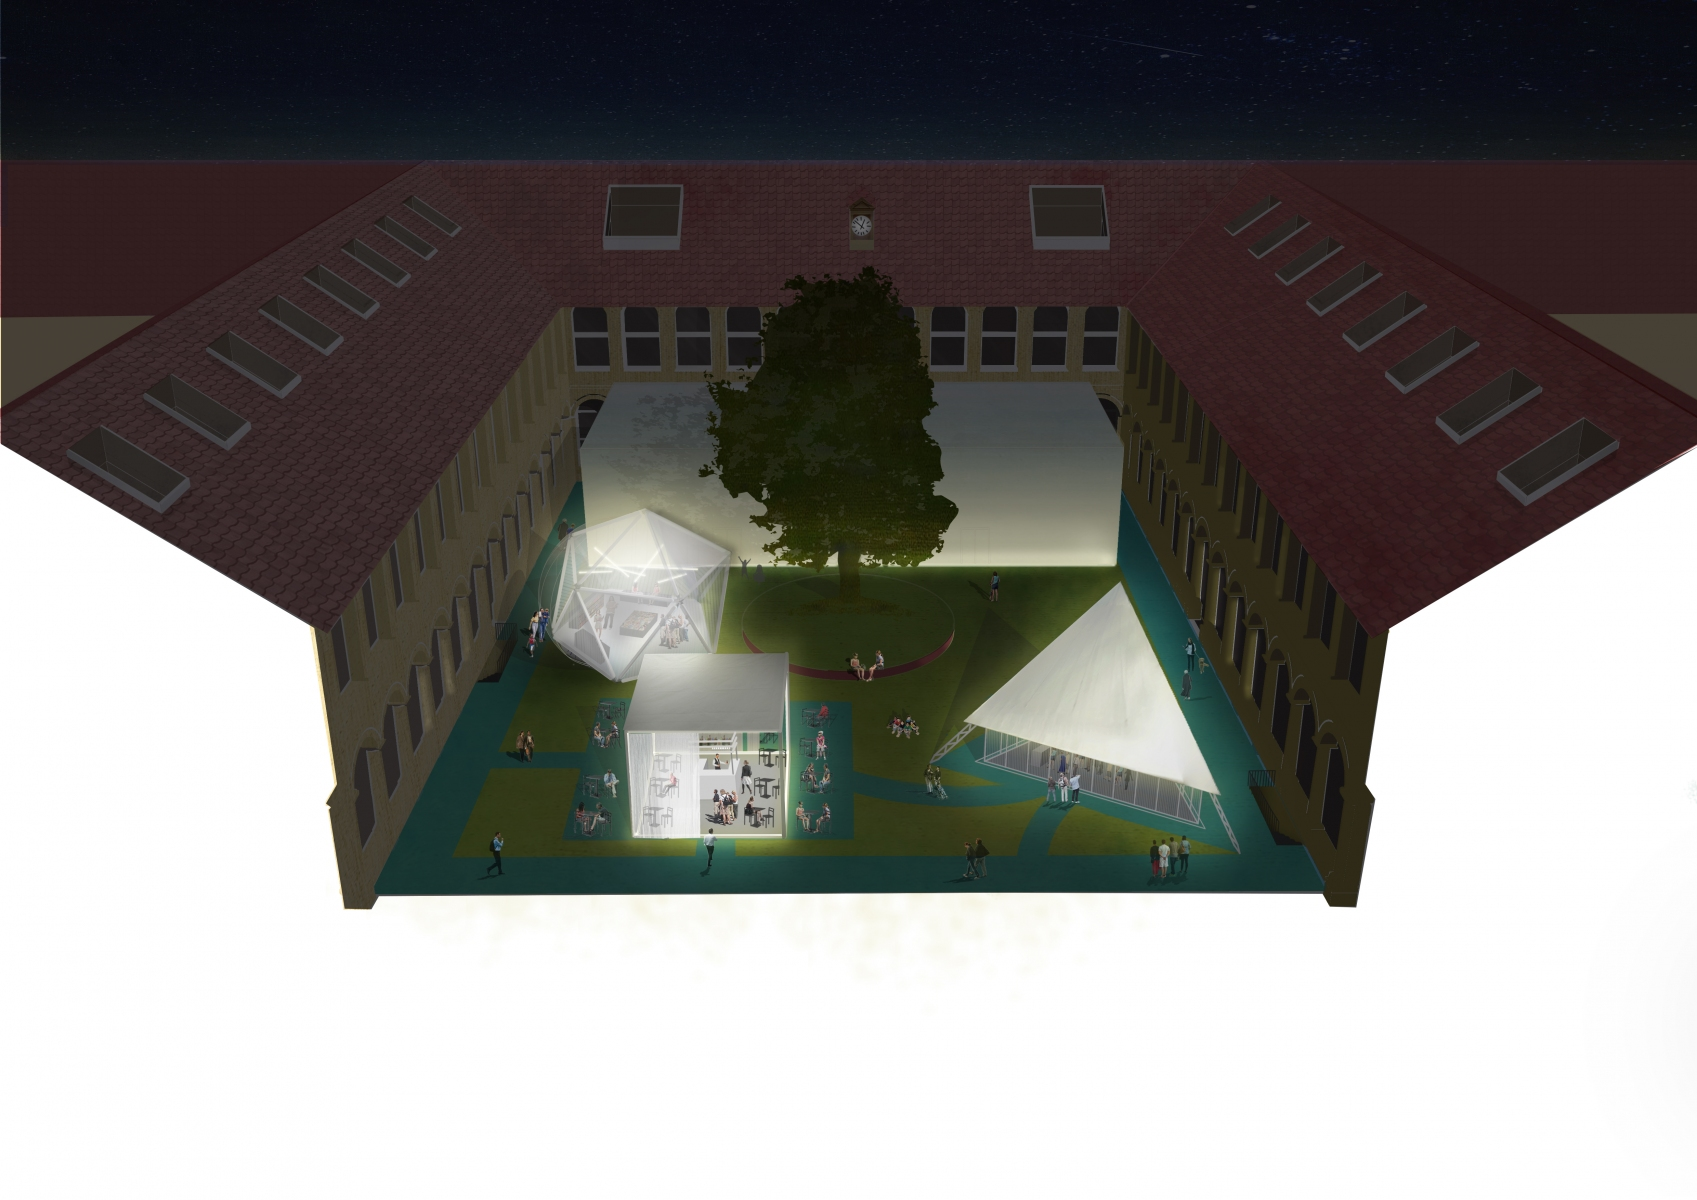 4.Hub-Leonardo_general-view_night